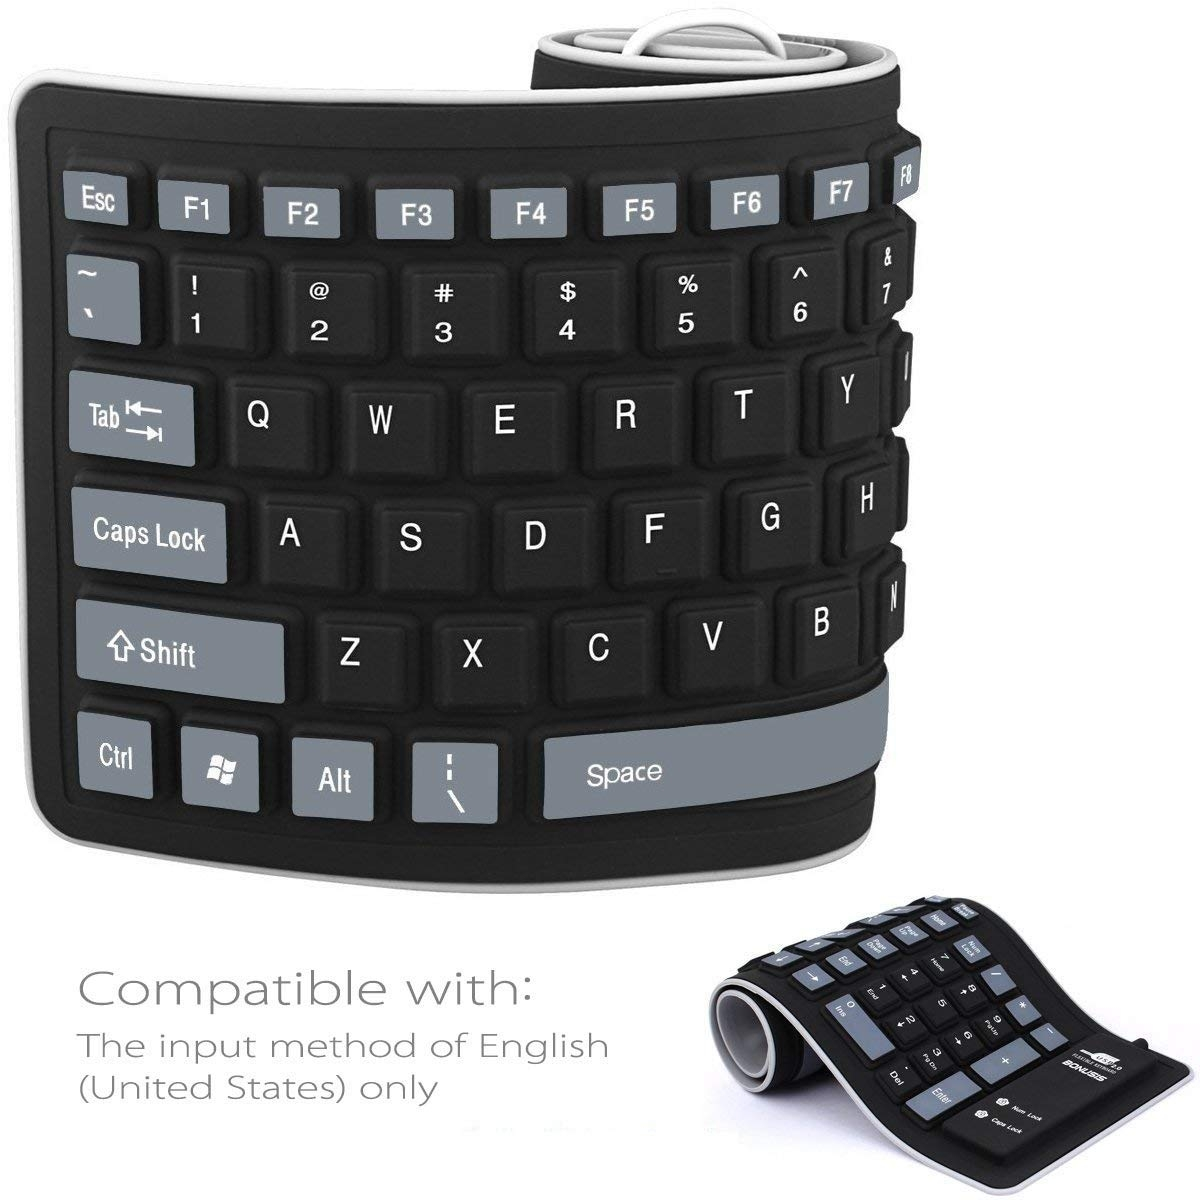 721cfbf60d7 ... Foldable Silicone Keyboard USB Wired Waterproof Computer Keyboard for  PC Laptop Notebook Black 84 Keys: Product No: 2399259. Item specifics:  Brand: FH